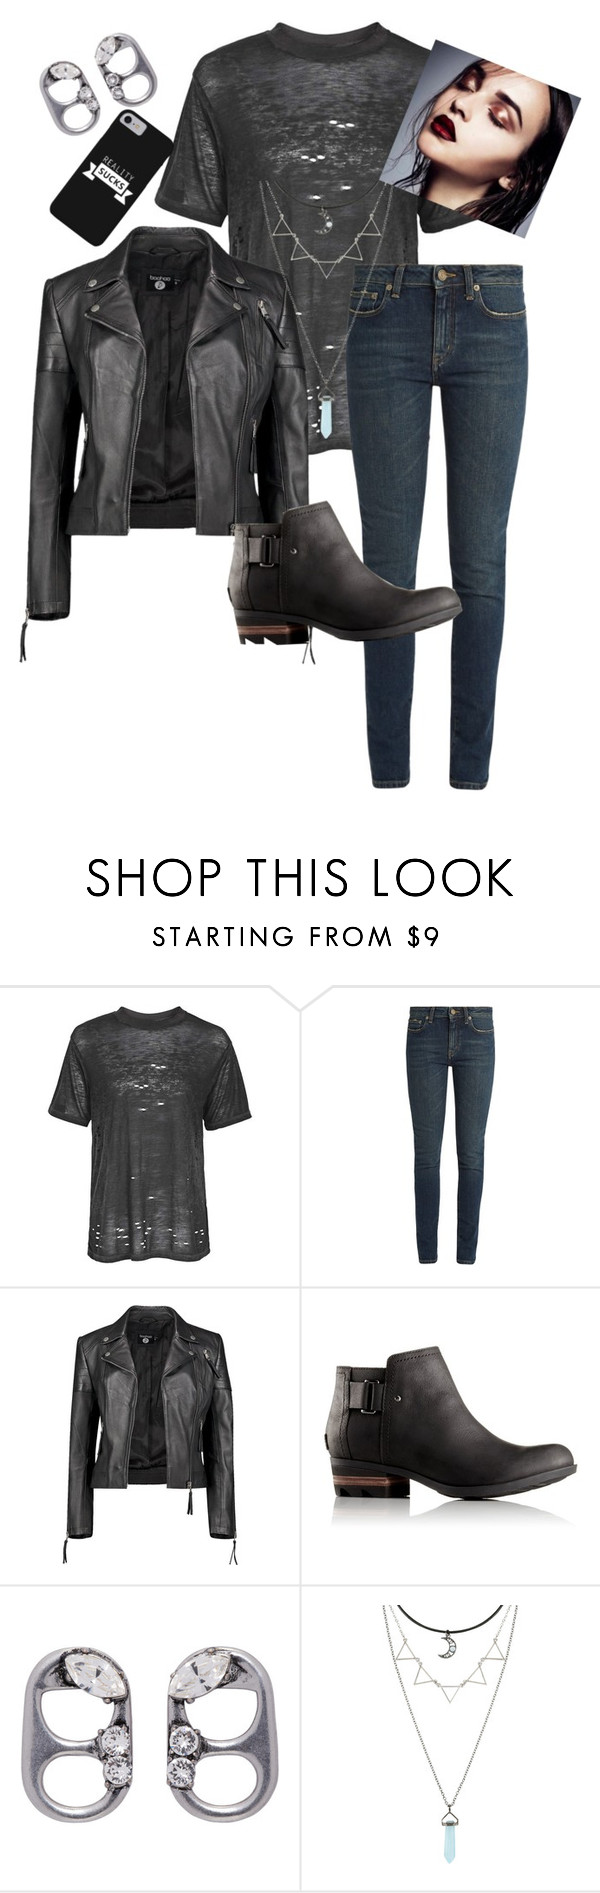 """""""Untitled #960"""" by zeniboo ❤ liked on Polyvore featuring Topshop, Yves Saint Laurent, Boohoo, SOREL and Marc Jacobs"""